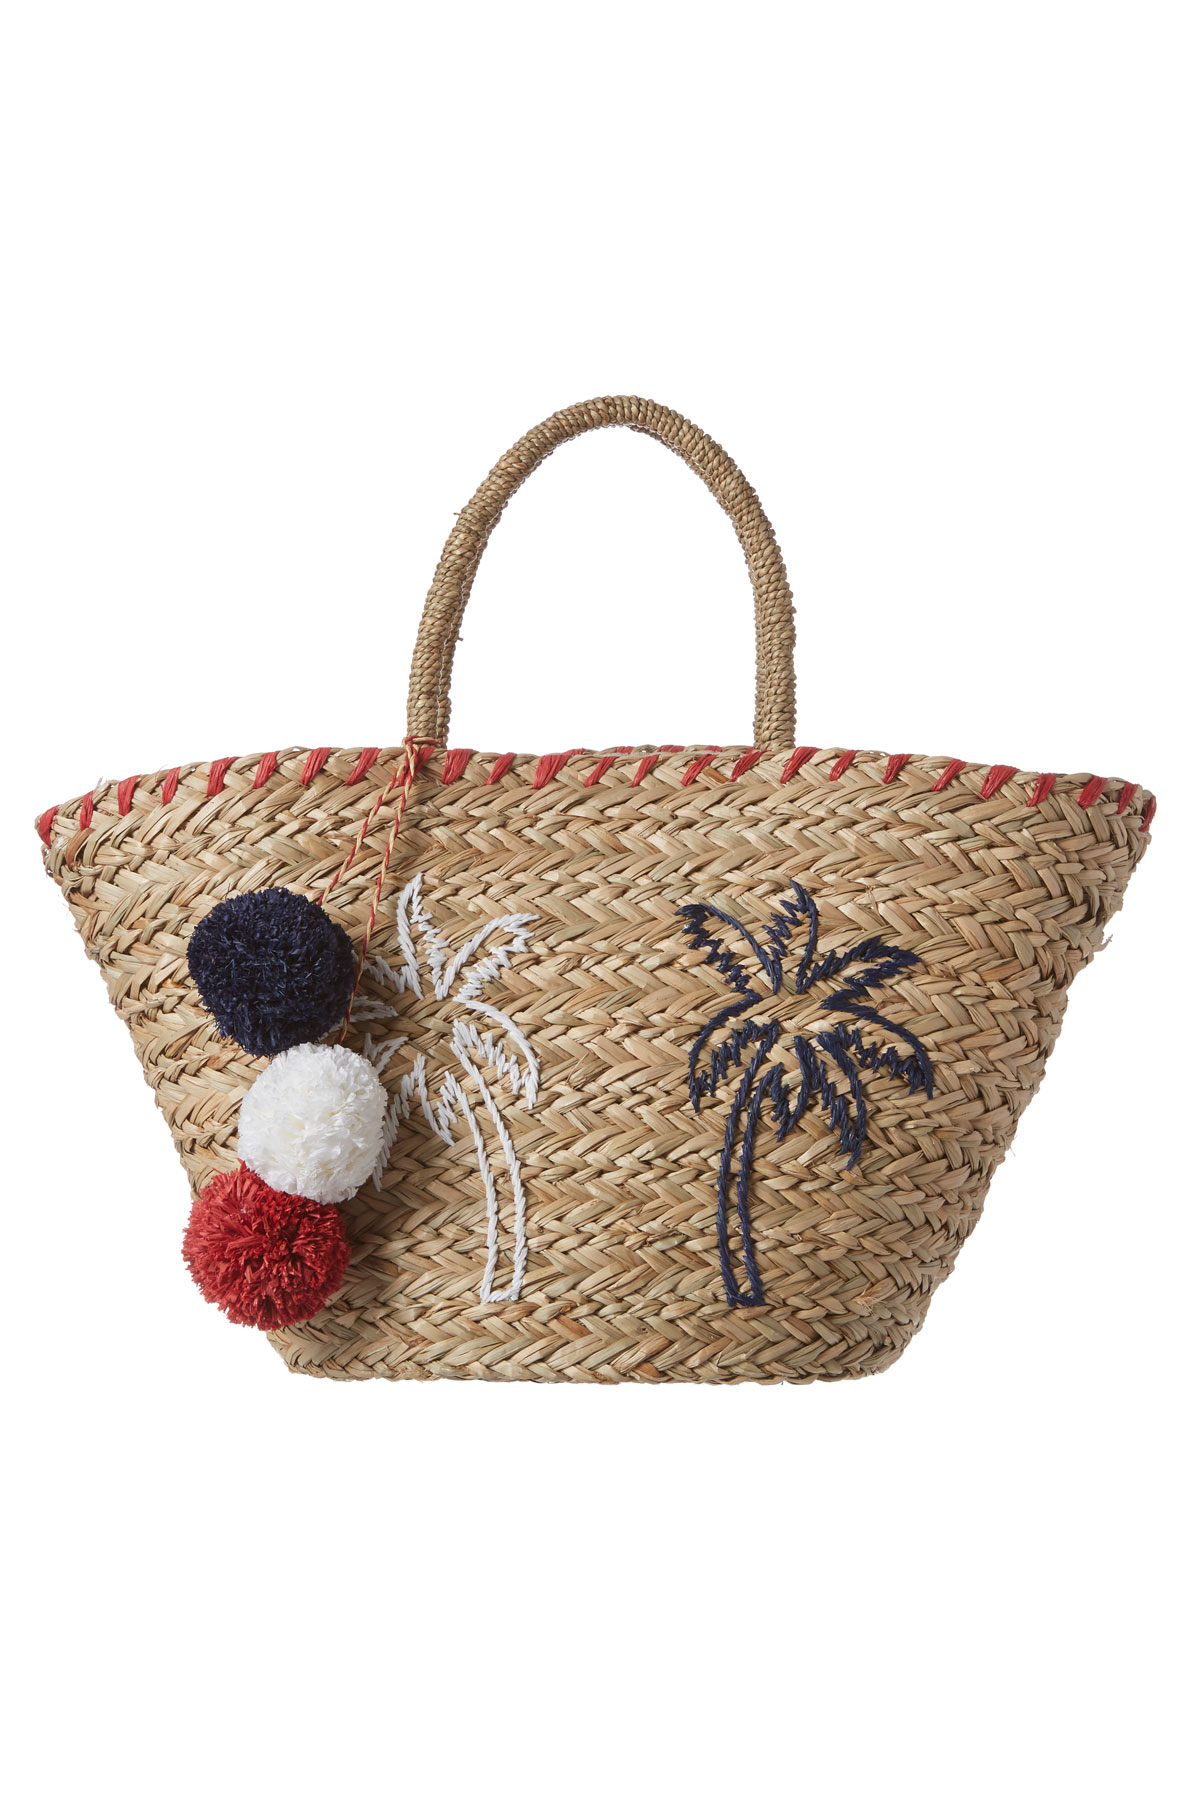 Embroidered Palm Tree Straw Tote - Natural 1